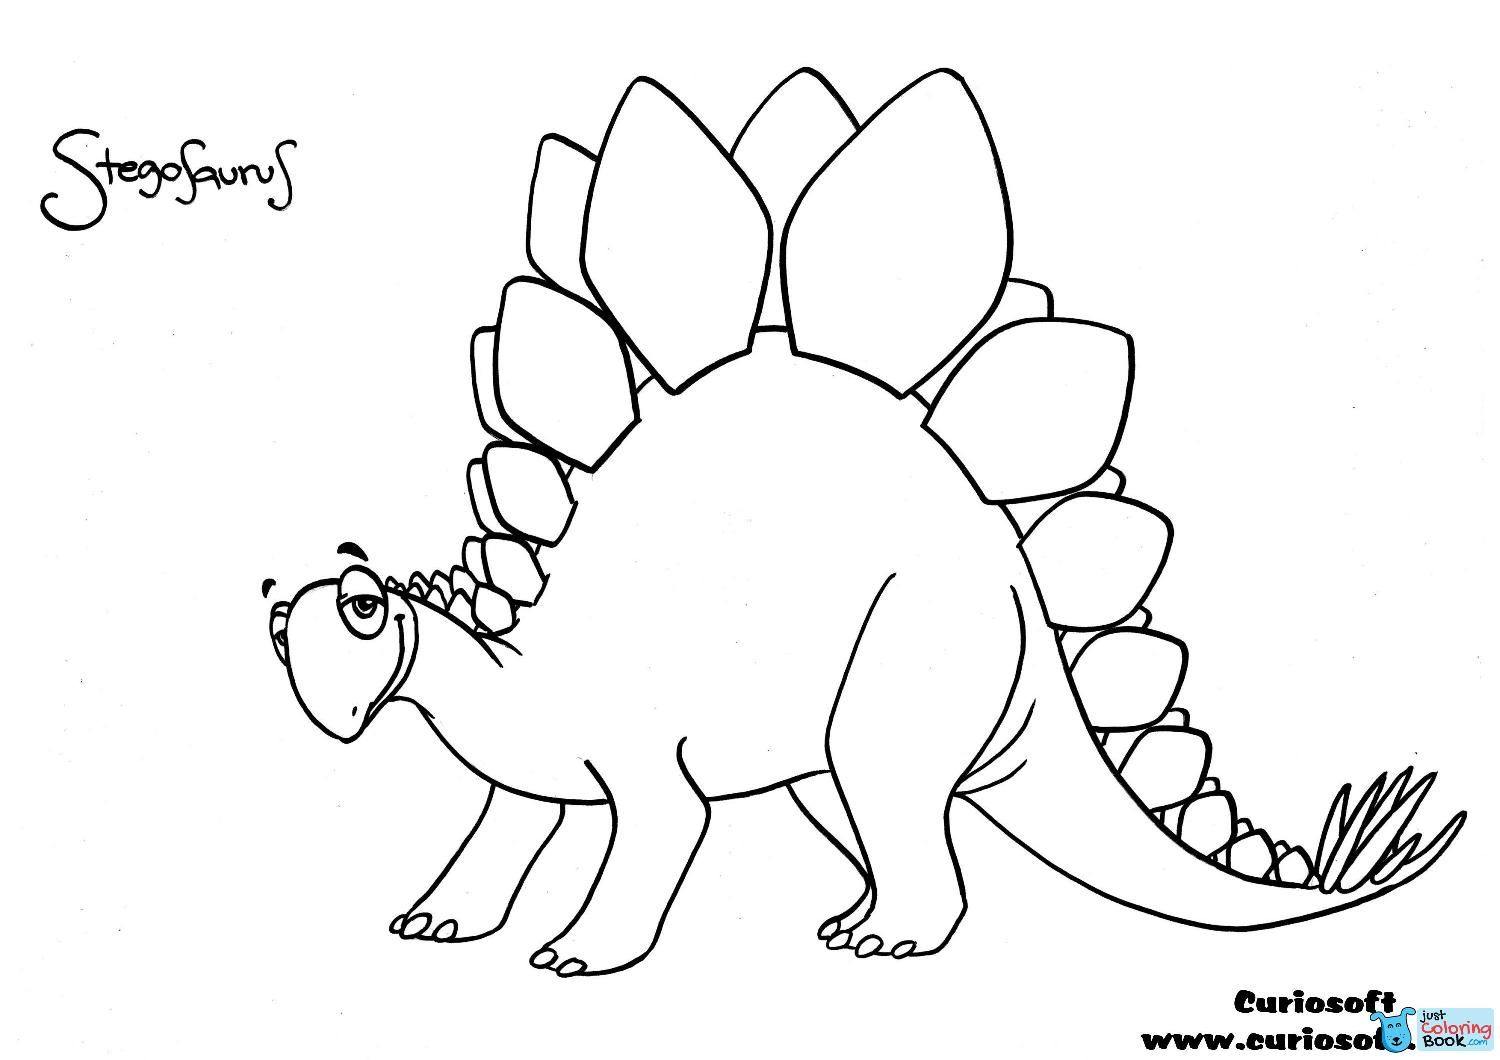 Stegosaurus Outline Pictures To Pin On Pinterest